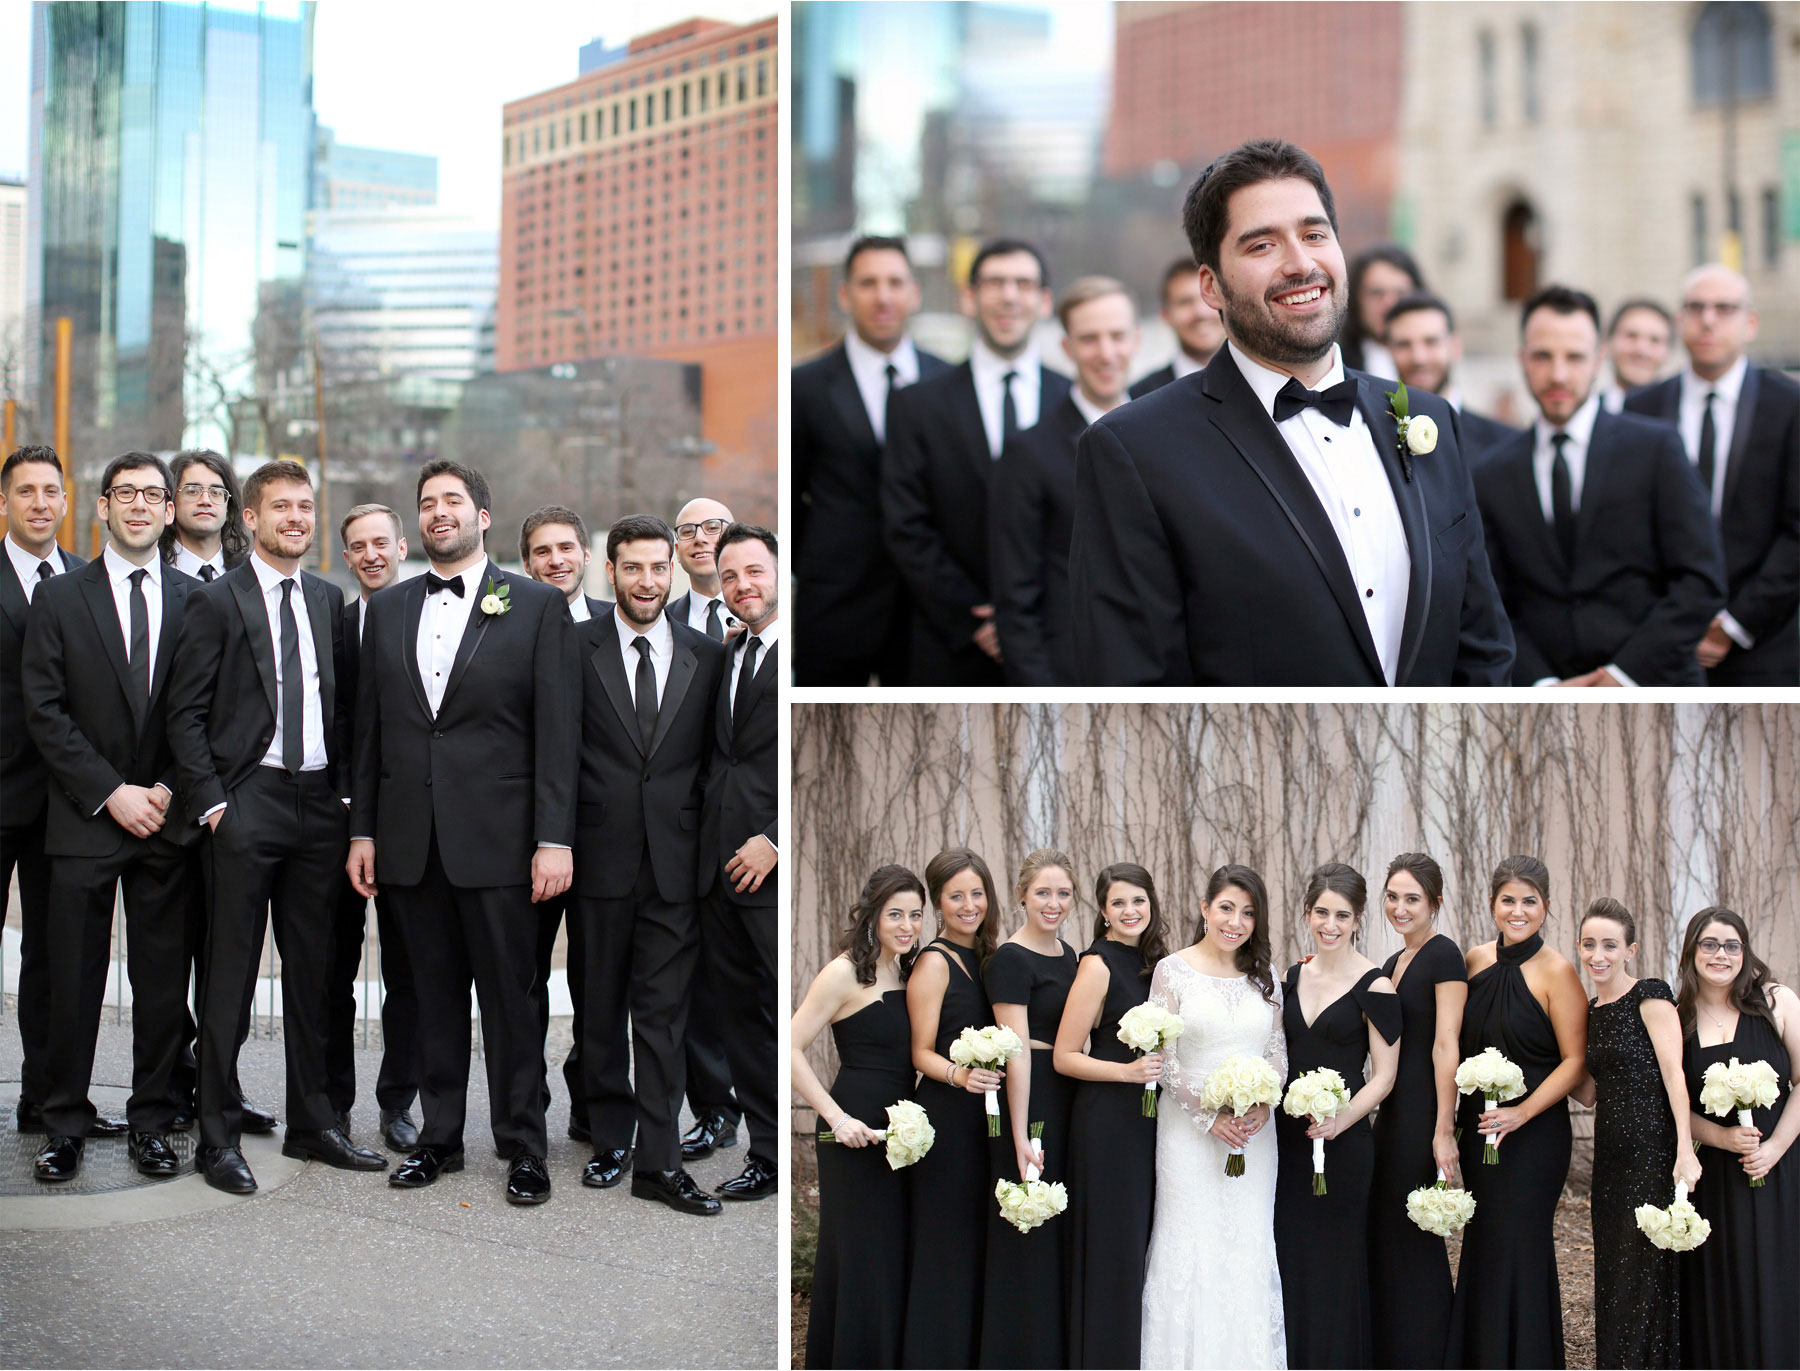 09-Minneapolis-Minnesota-Wedding-Photographer-by-Andrew-Vick-Photography-Winter-Millennium-Hotel-Bride-Groom-Bridesmaids-Groomsmen-Downtown-Flowers-Amy-and-Jordan.jpg